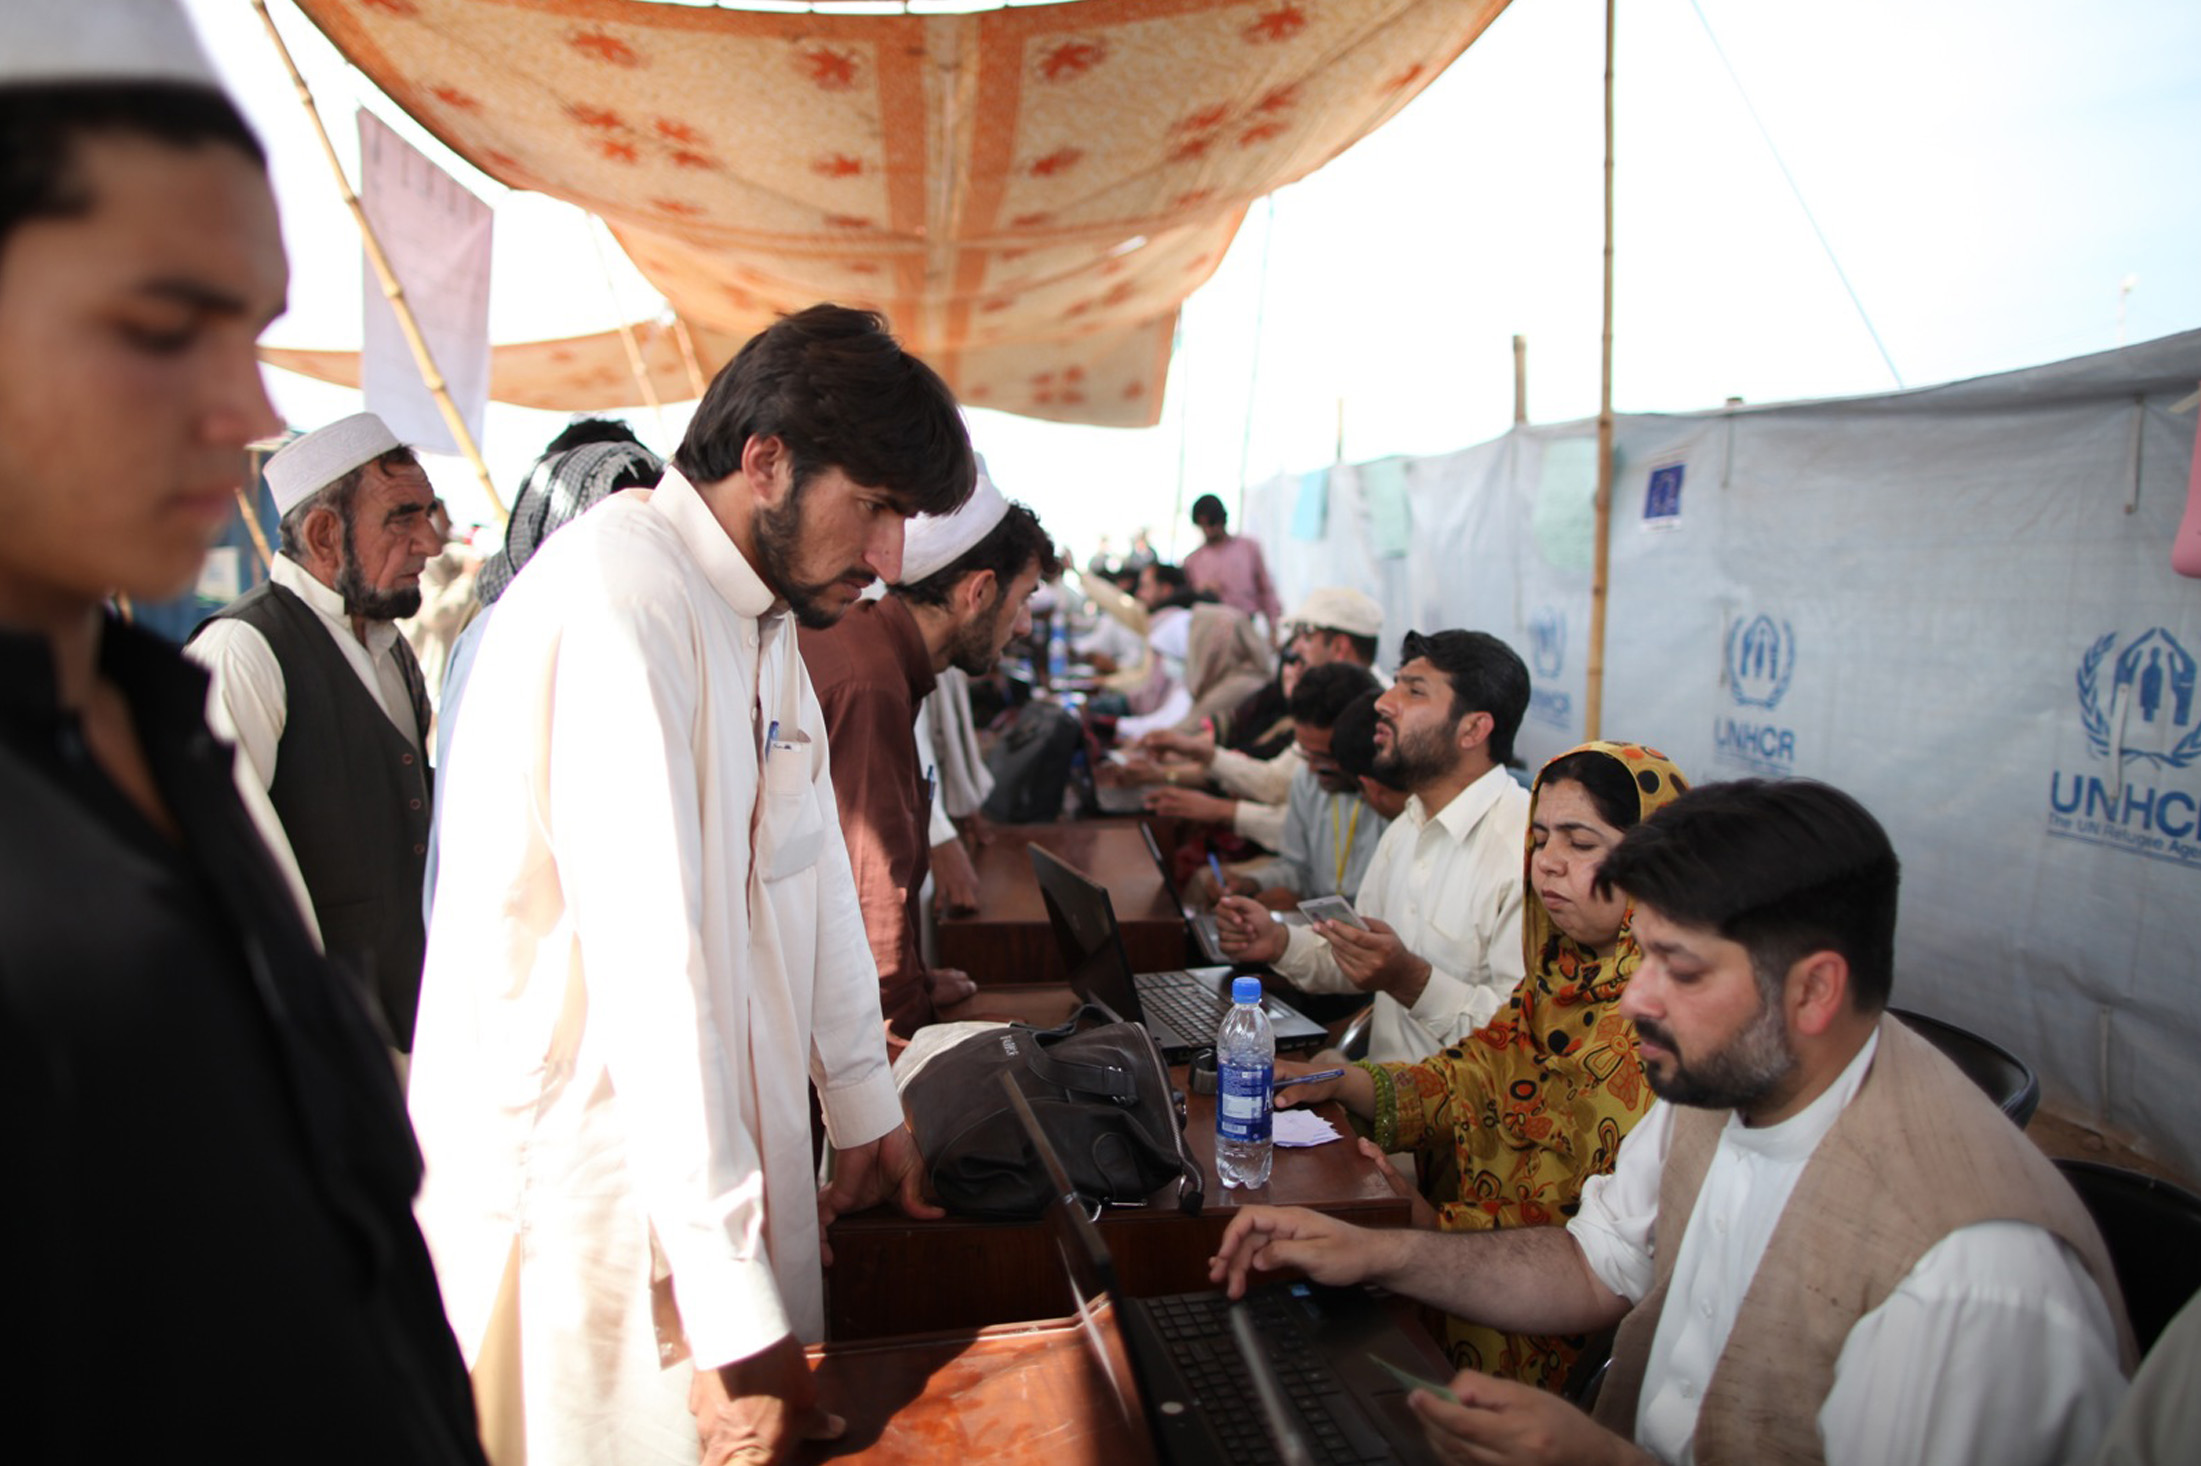 Only a small pecentage of IDPs who register at Jalozai choose to live at the camp